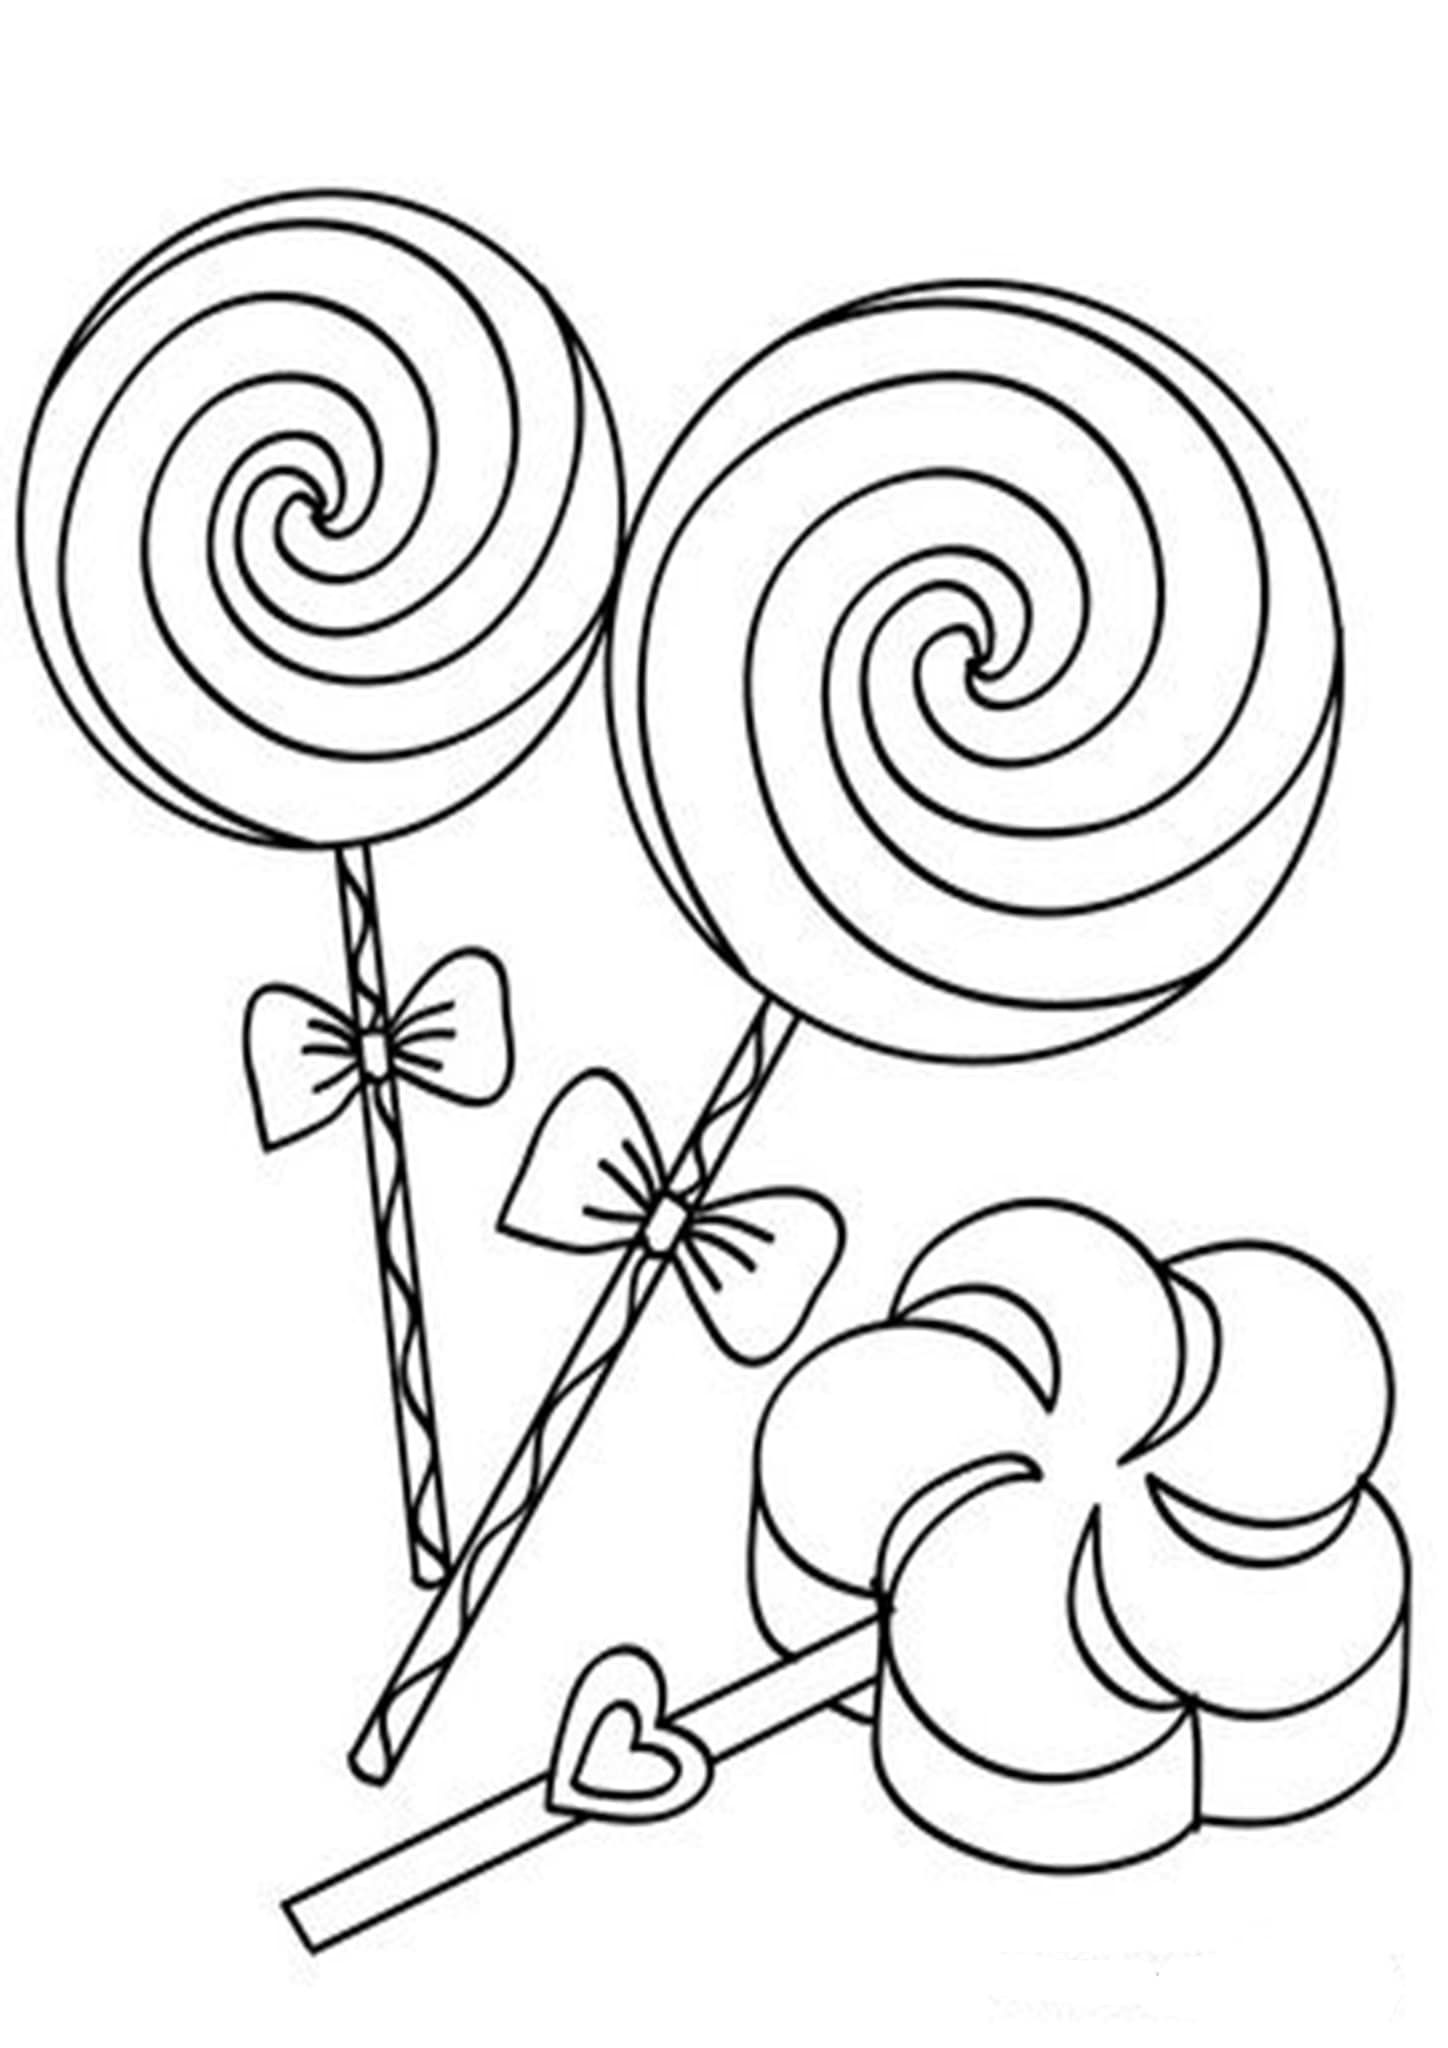 Free Easy To Print Candy Coloring Pages Candy Coloring Pages Birthday Coloring Pages Coloring Pages For Kids